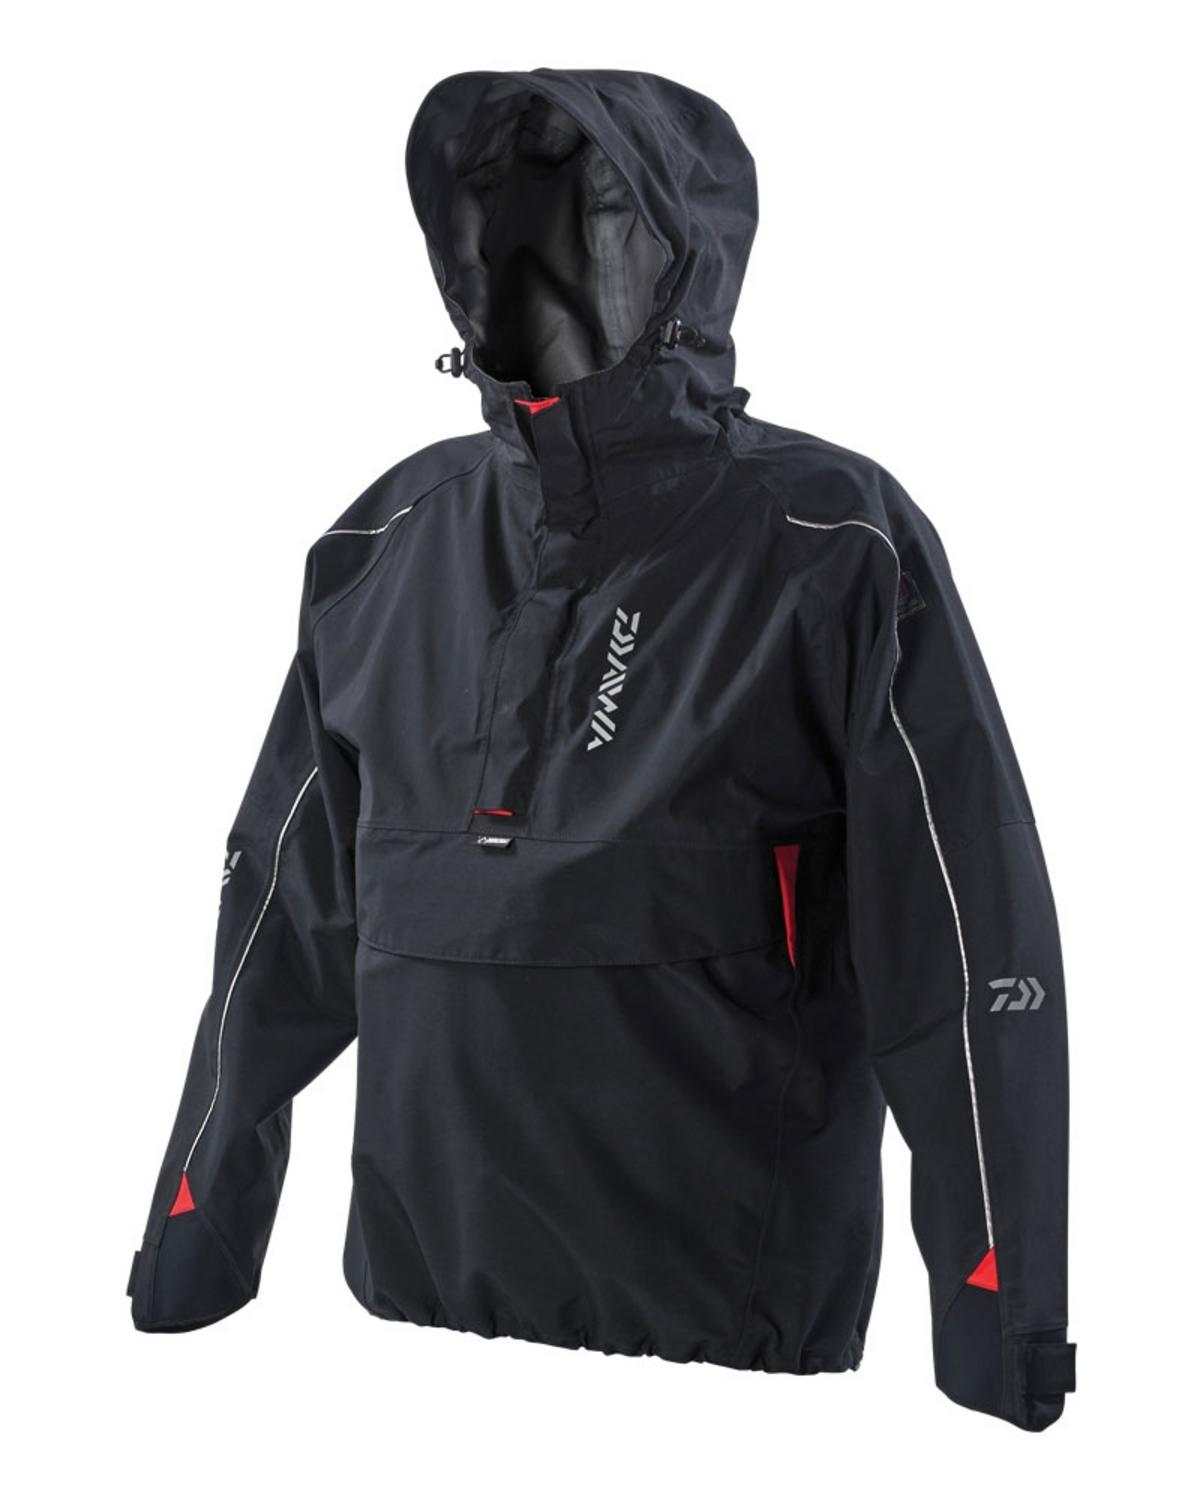 DAIWA AIRITY GORETEX & WINDSTOPPER CLOTHING ,FULL RANGE ...